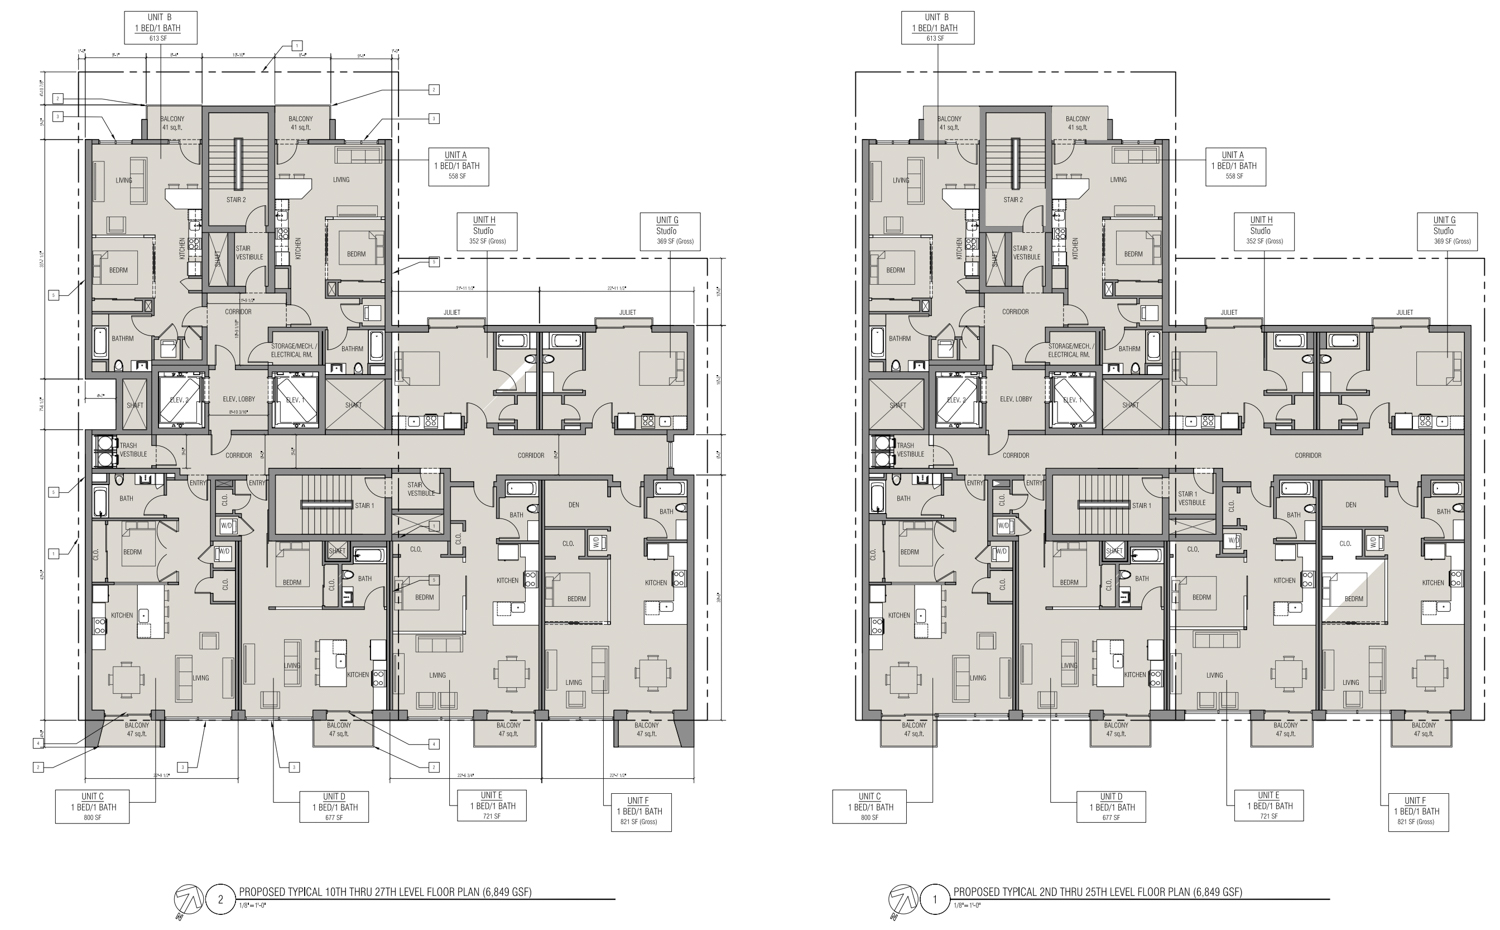 17 East Santa Clara Street residential floor plans, design by Anderson Architects